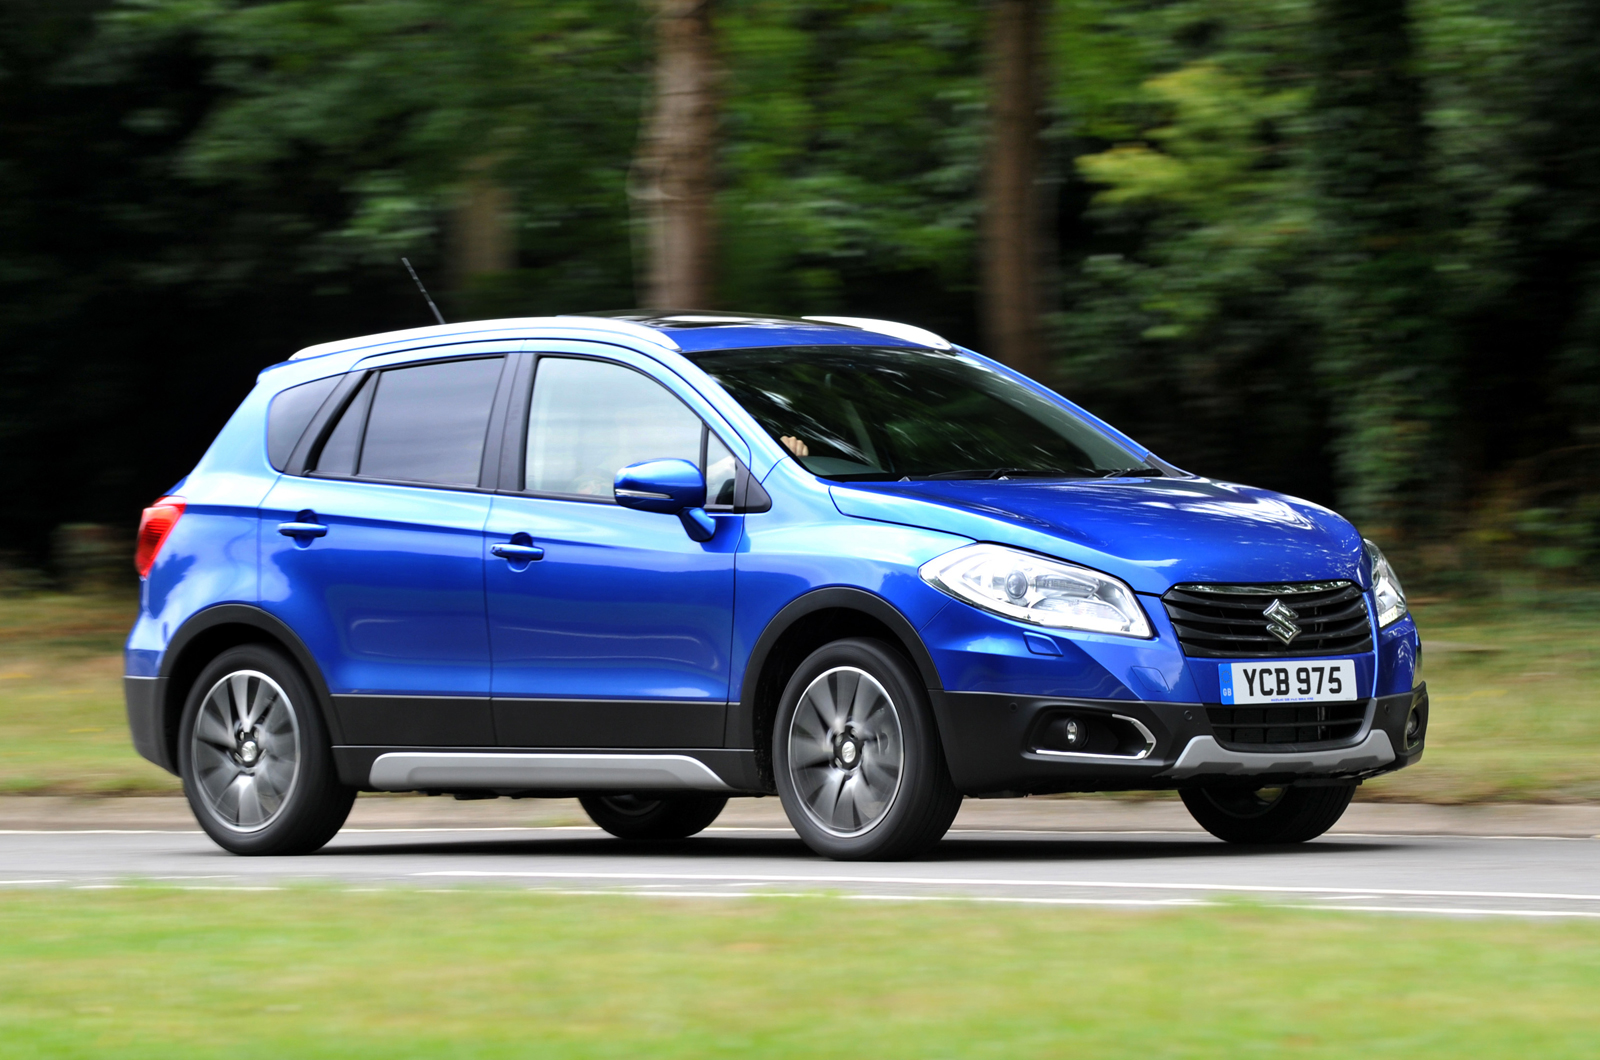 suzuki sx4 s cross 1 6 ddis allgrip sz5 mpv first drive. Black Bedroom Furniture Sets. Home Design Ideas